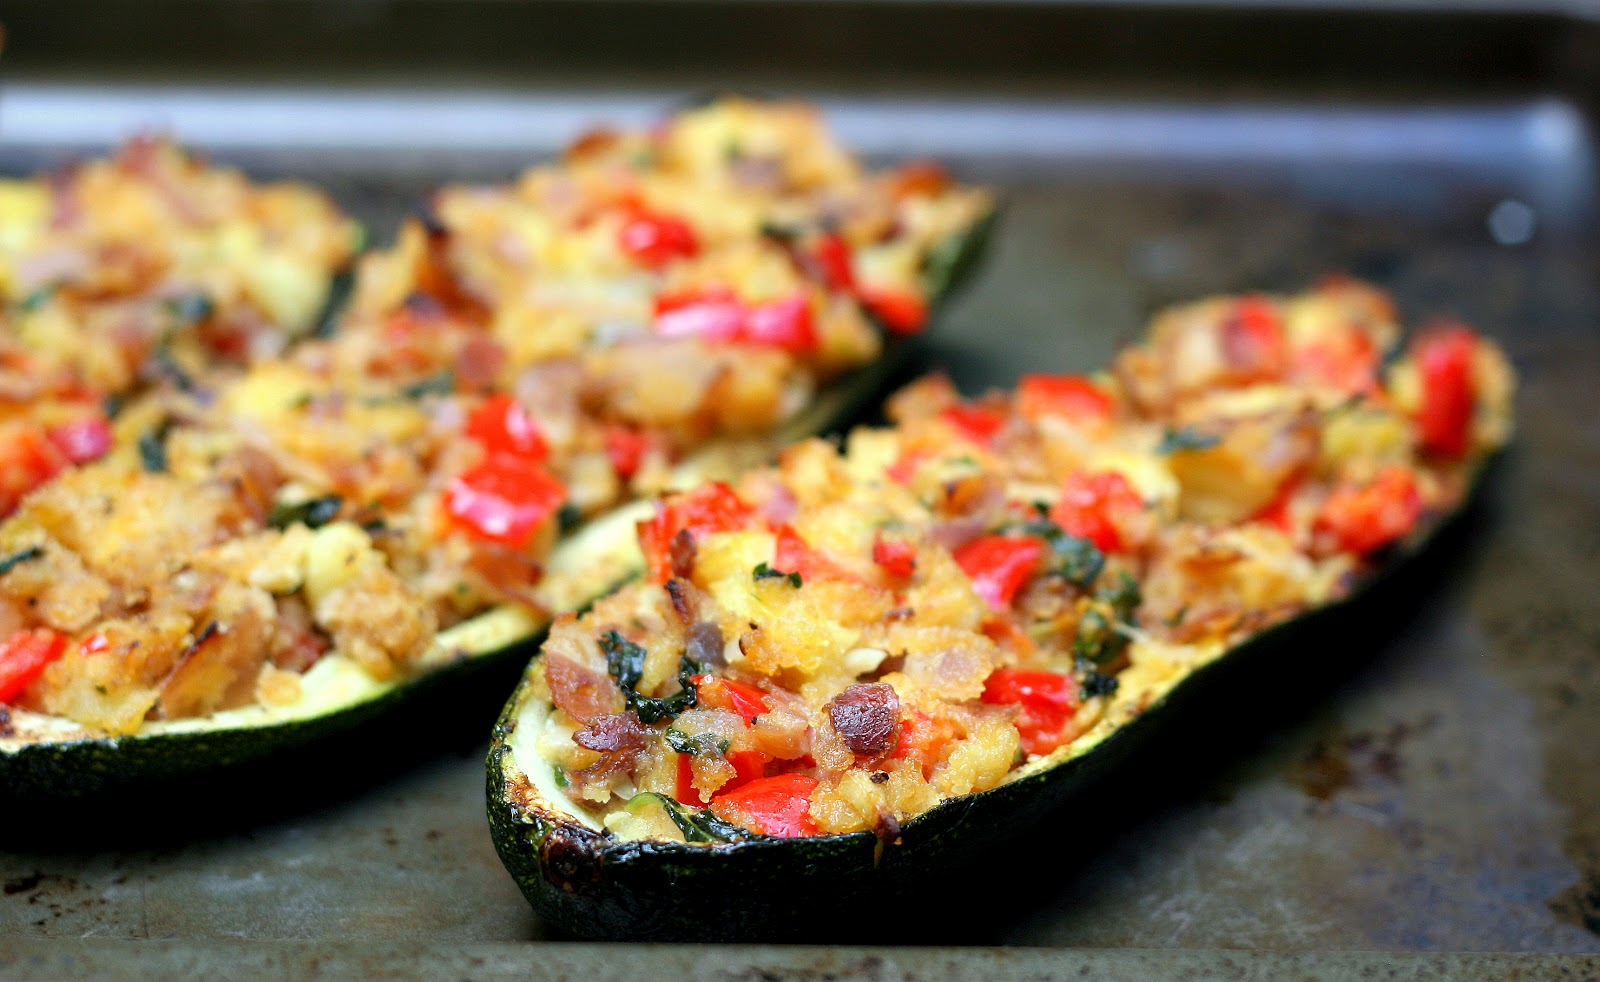 stuffed zucchini boats 4 medium zucchinis 1 tbsp olive oil